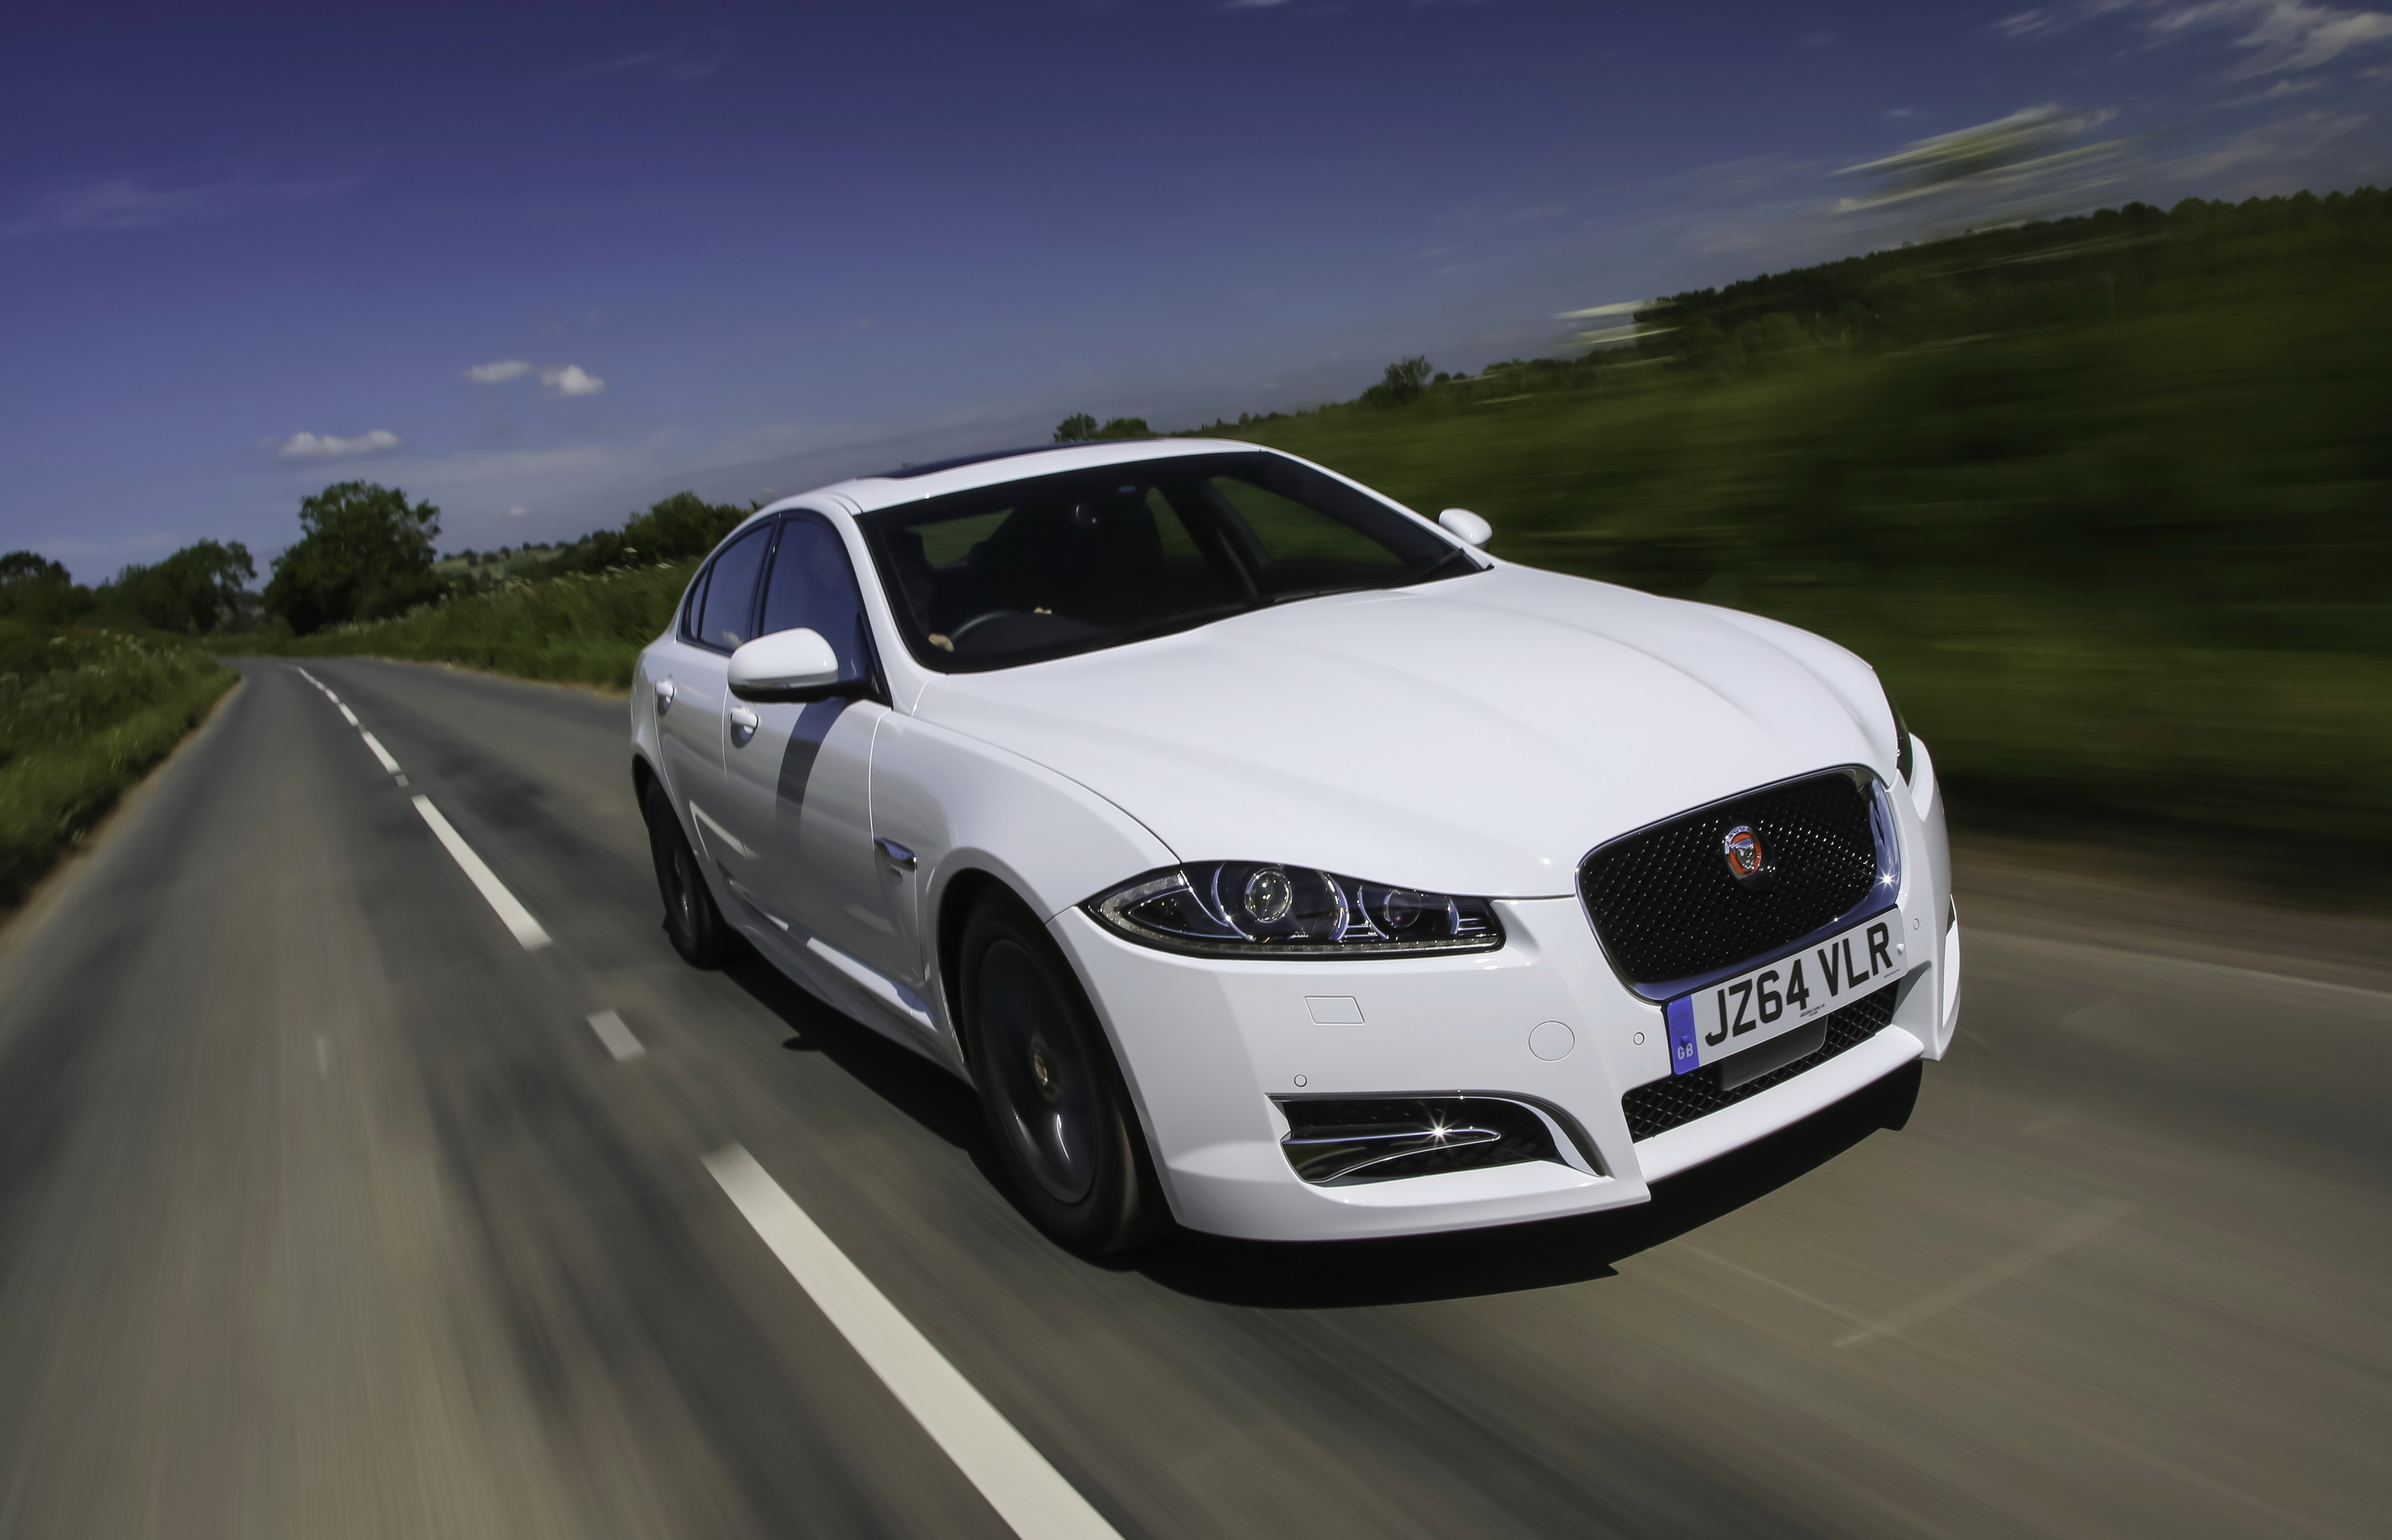 as xf latest uk dawn to s grandaurora new comes pilatos the pilato superiorvehicles jaguar hearse